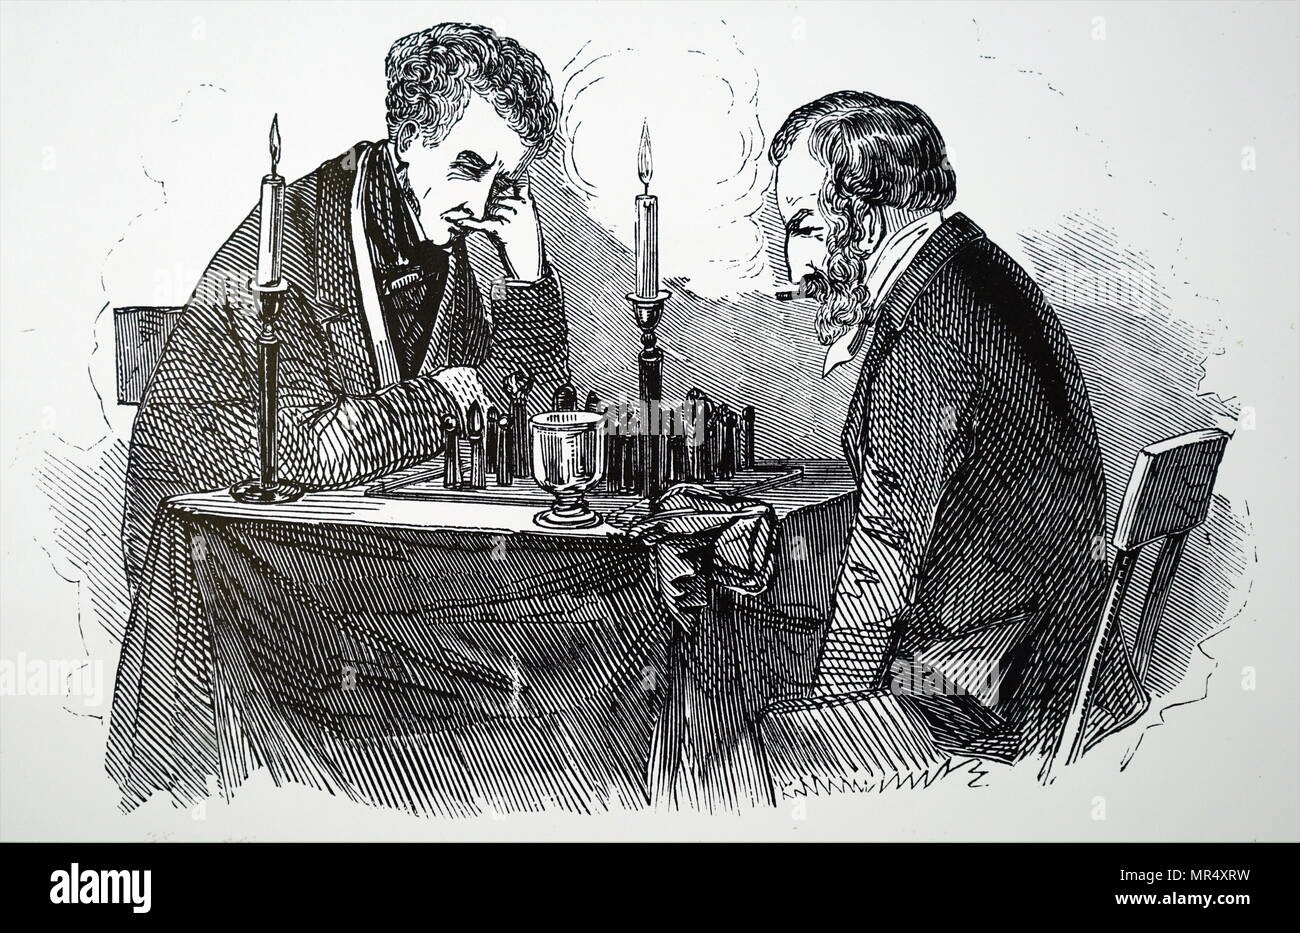 Illustration depicting a chess match between Howard Staunton and Bernhard Horwitz. Howard Staunton (1810-1874) an English chess master. Bernhard Horwitz (1807-1885)  German chess master and chess writer. Dated 19th century - Stock Image